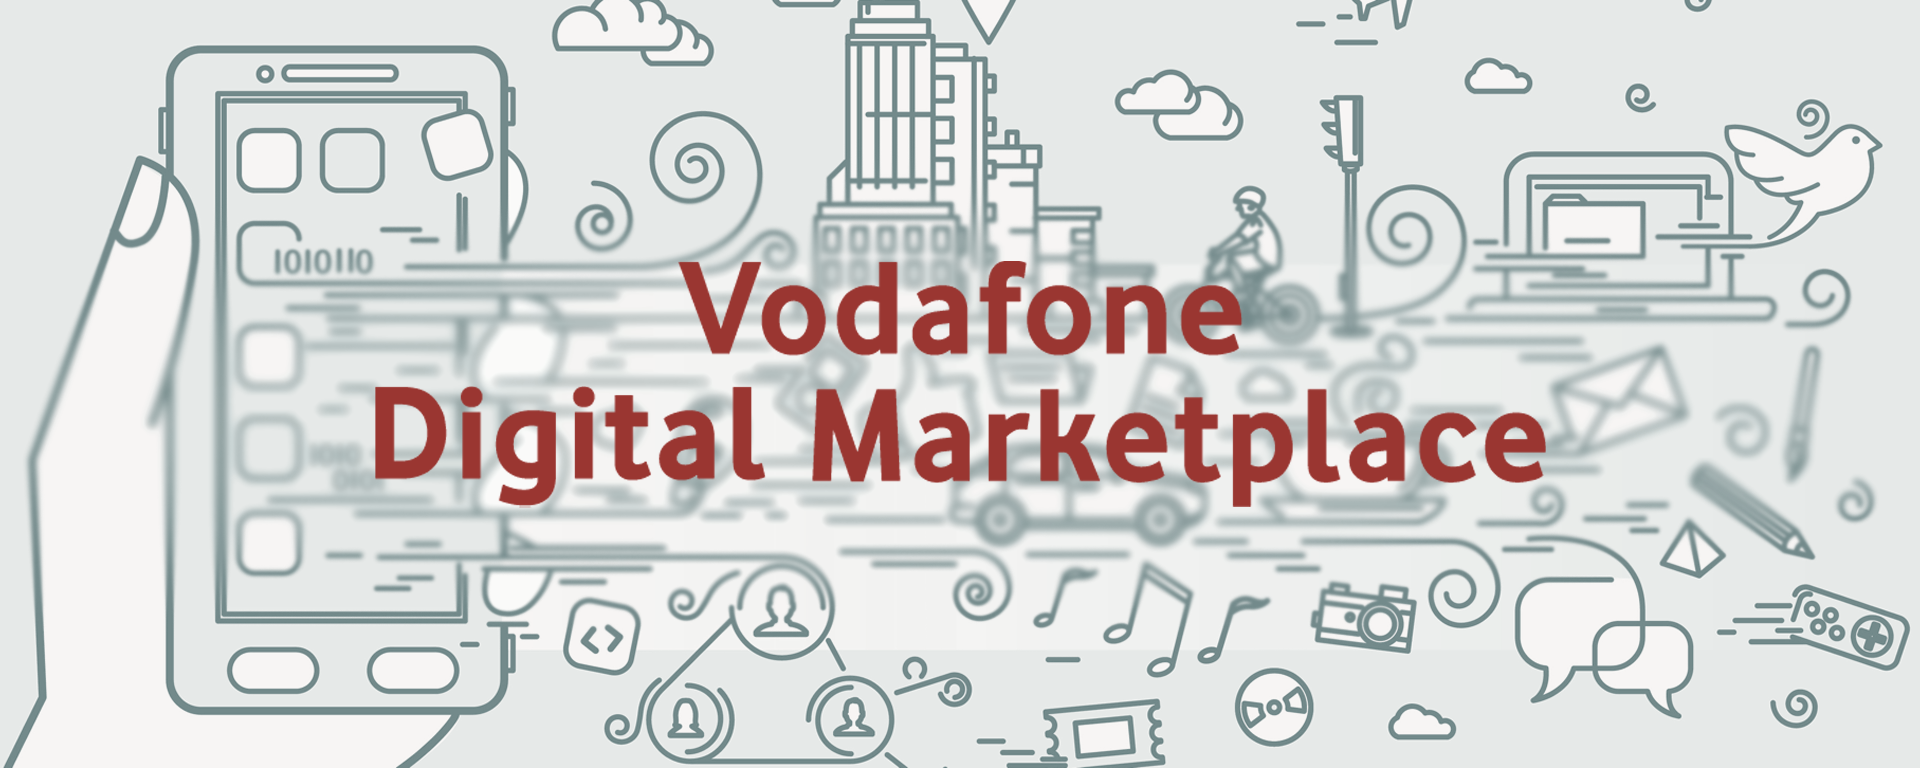 digitalmarketplace_flatbox